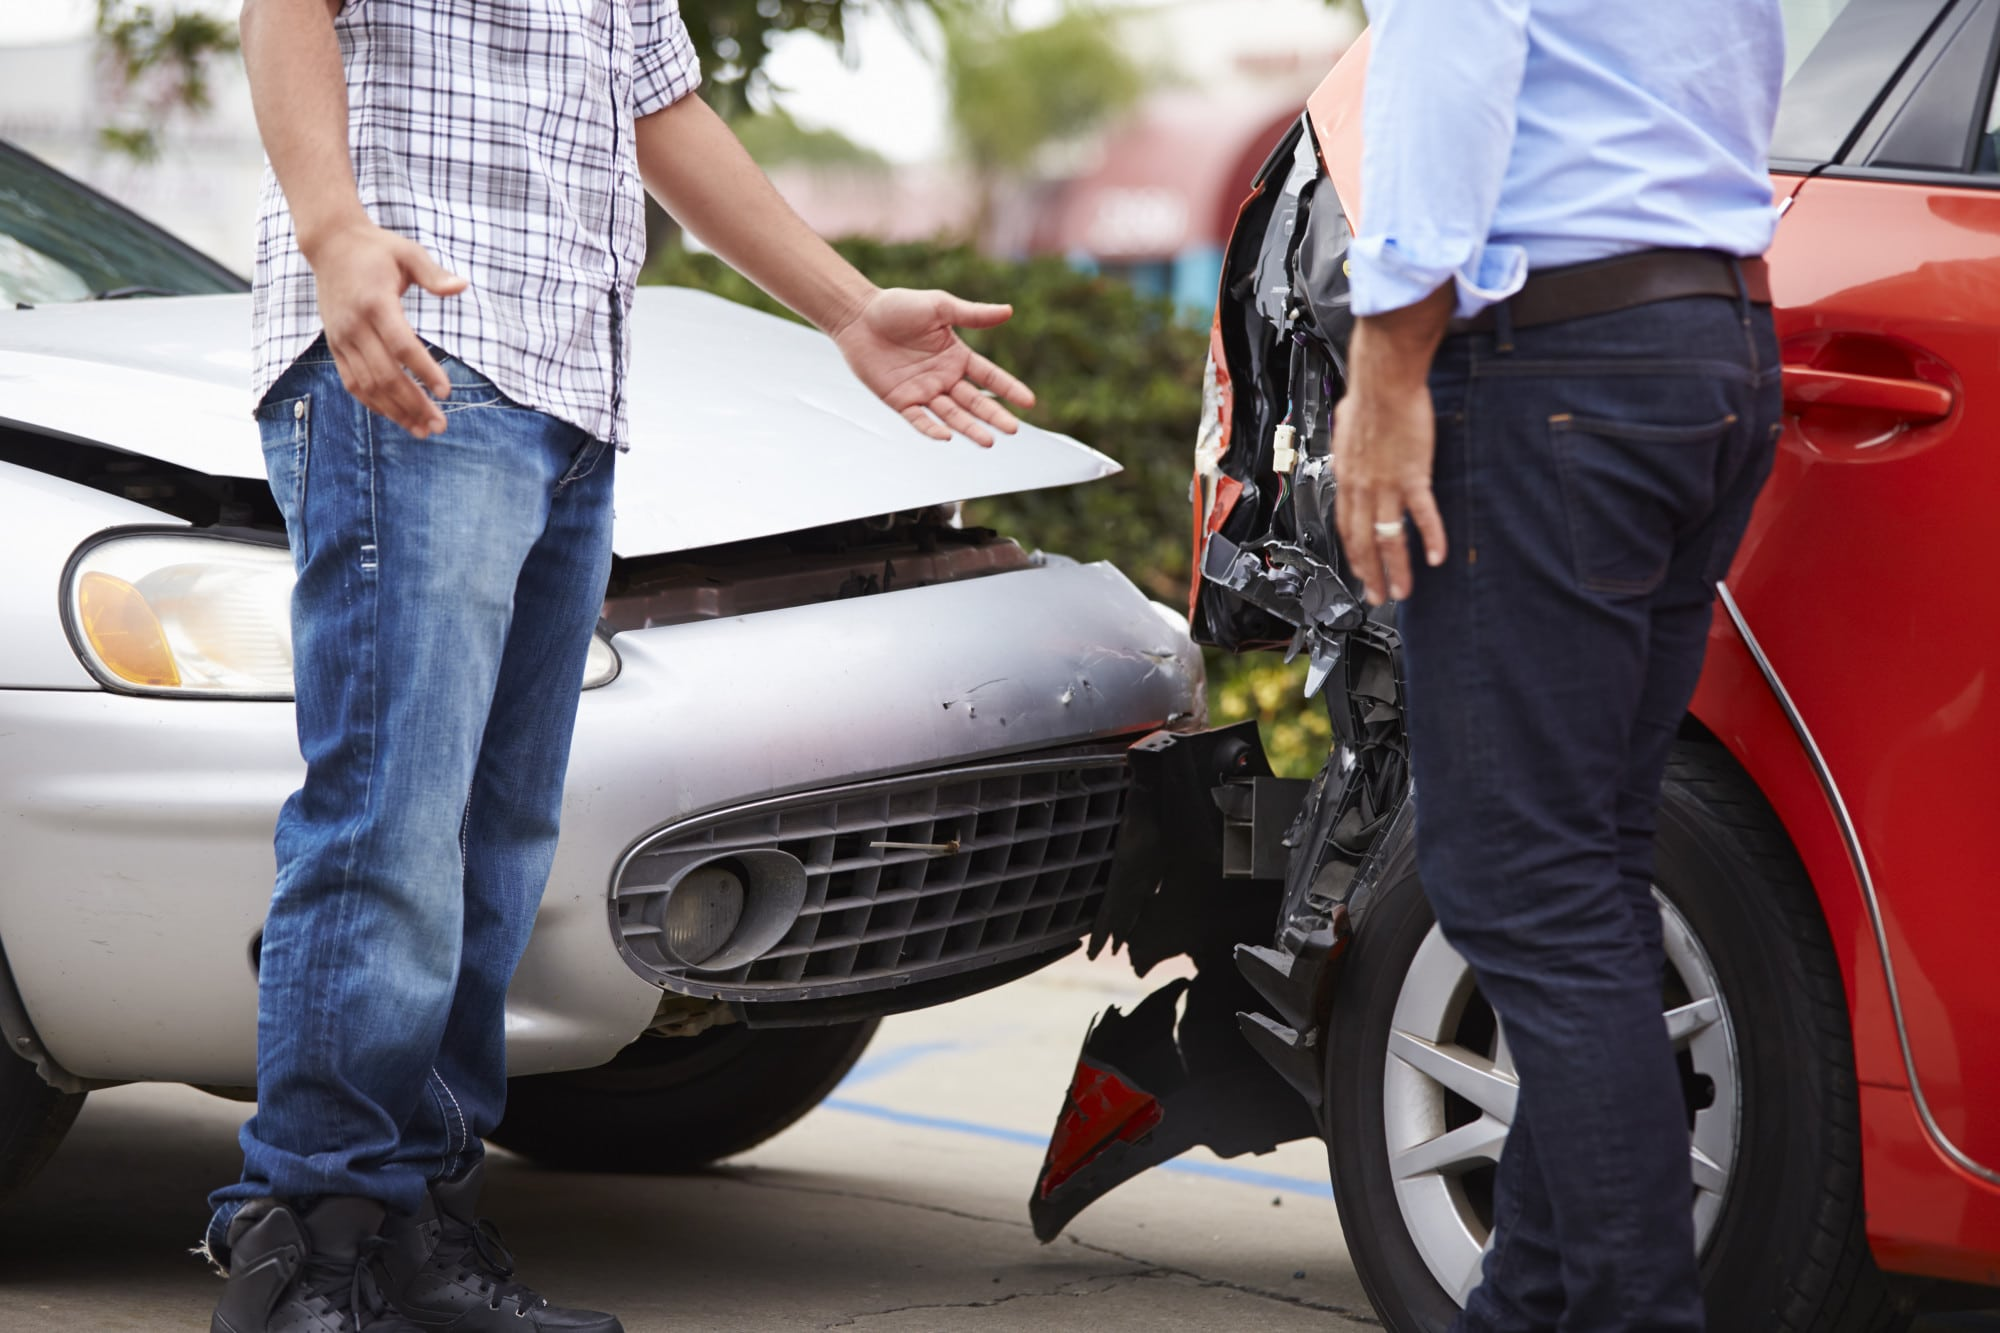 Suing After a Car Accident? Here Are 7 Mistakes That Could Hurt Your Case